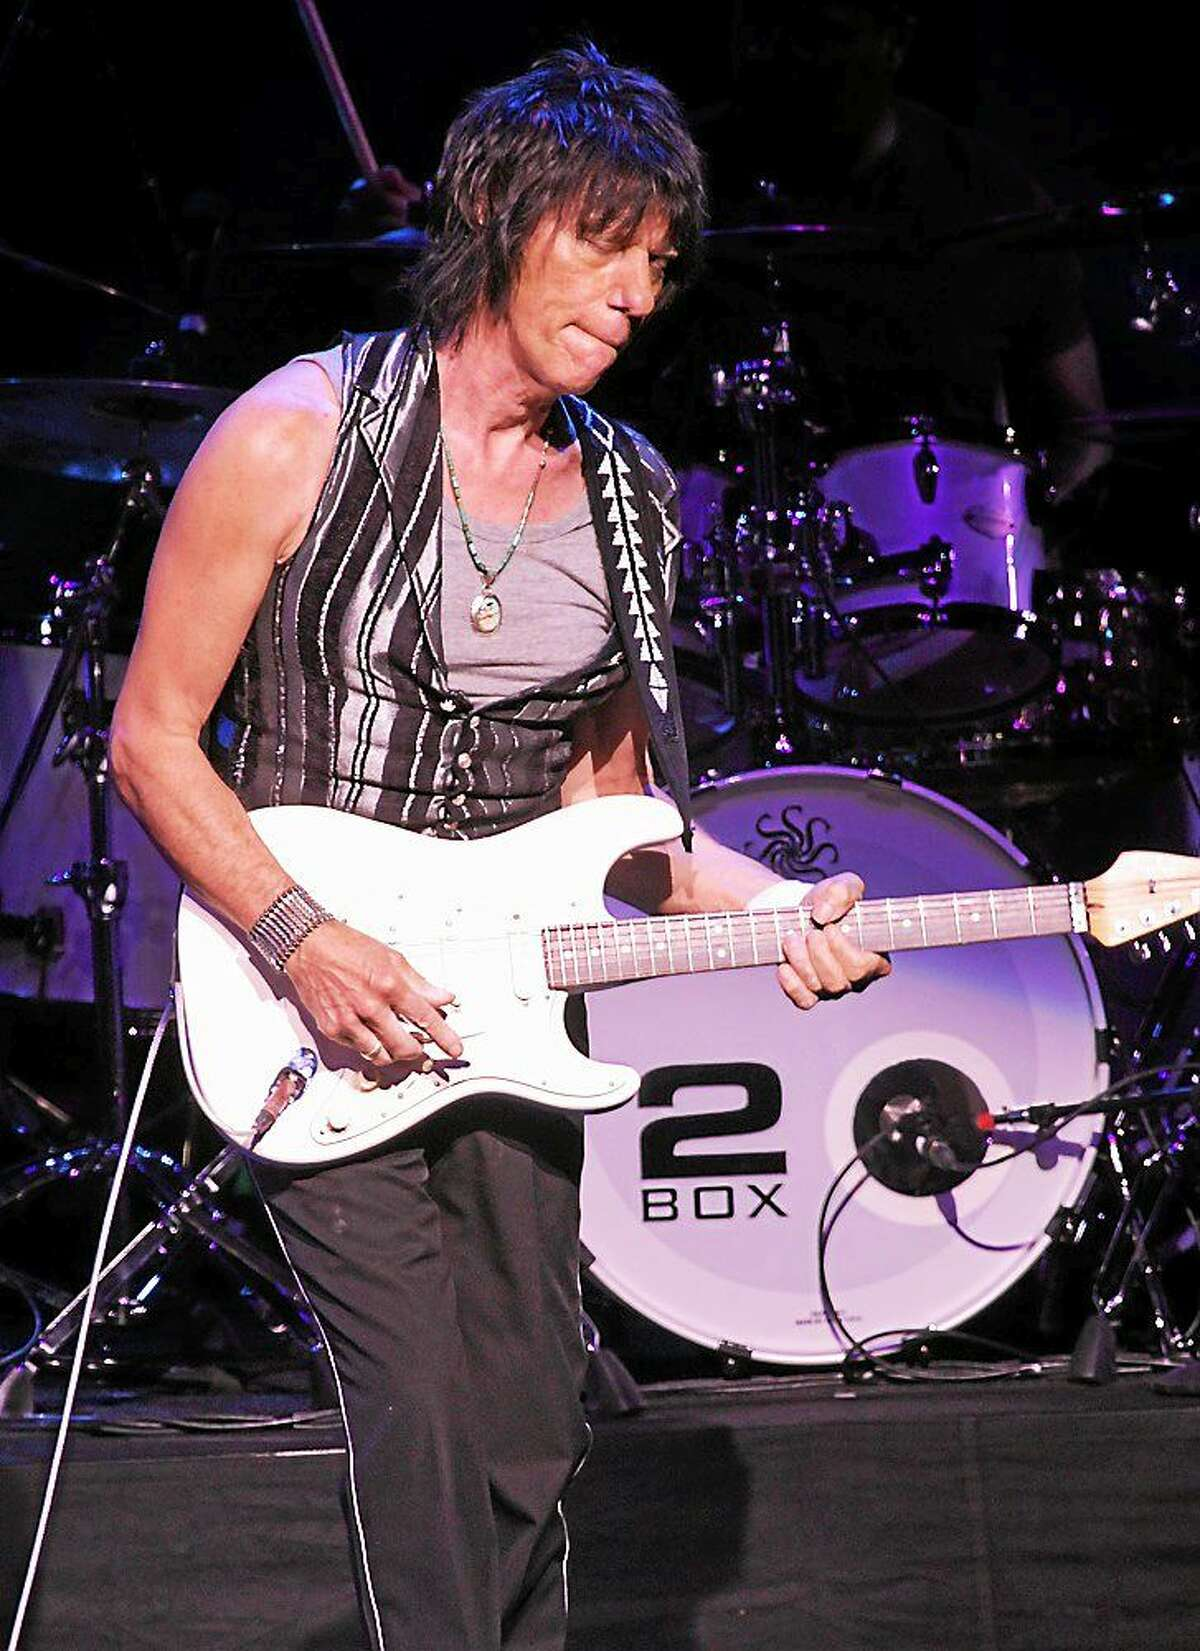 Photo by John Atashian Rock guitarist extraordinaire Jeff Beck is shown performing on stage during his concert in the Grand Theater at the Foxwoods Resort & Casino, Aug. 31. Beck is one of the three guitarists to have played with The Yardbirds, the other two being Eric Clapton and Jimmy Page. Beck and his band are releasing a new studio cd later this year. The new, still-unnamed release will be Beckís first studio album since 2010's successful ìEmotion & Commotionî, which peaked just outside the Top 10 on Billboardís albums chart.